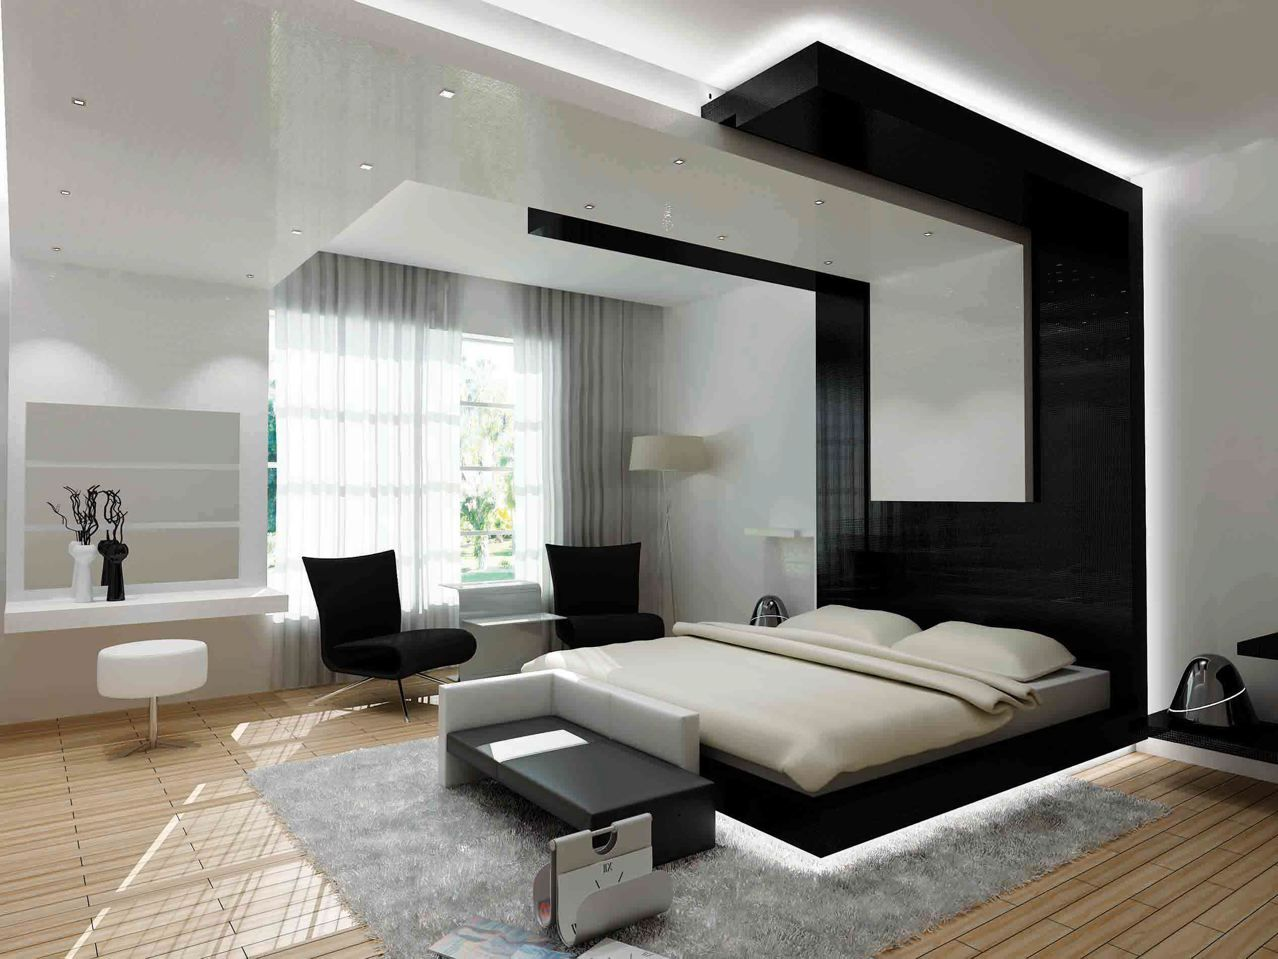 Designer Bedroom Ideas bedrooms marvellous bedroom ideas striking bedroom ideas for guys together with excerpt cool bedroom bedroom picture 25 Best Modern Bedroom Designs